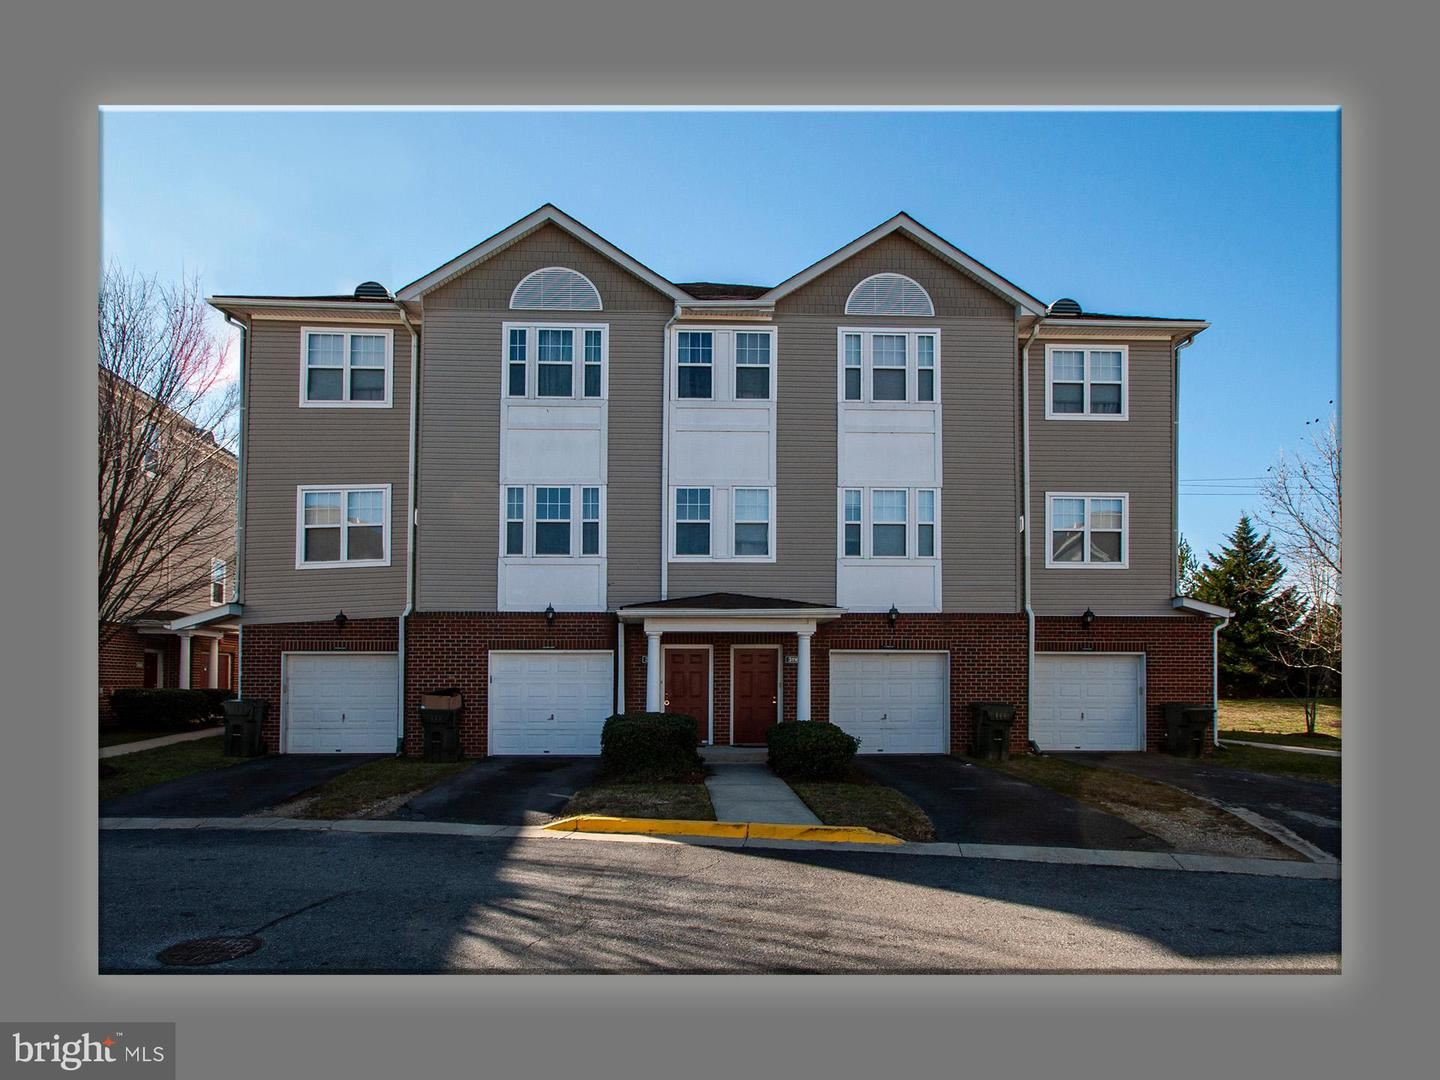 Photo of 3110 IRMA CT, SUITLAND, MD 20746 (MLS # MDPG590716)